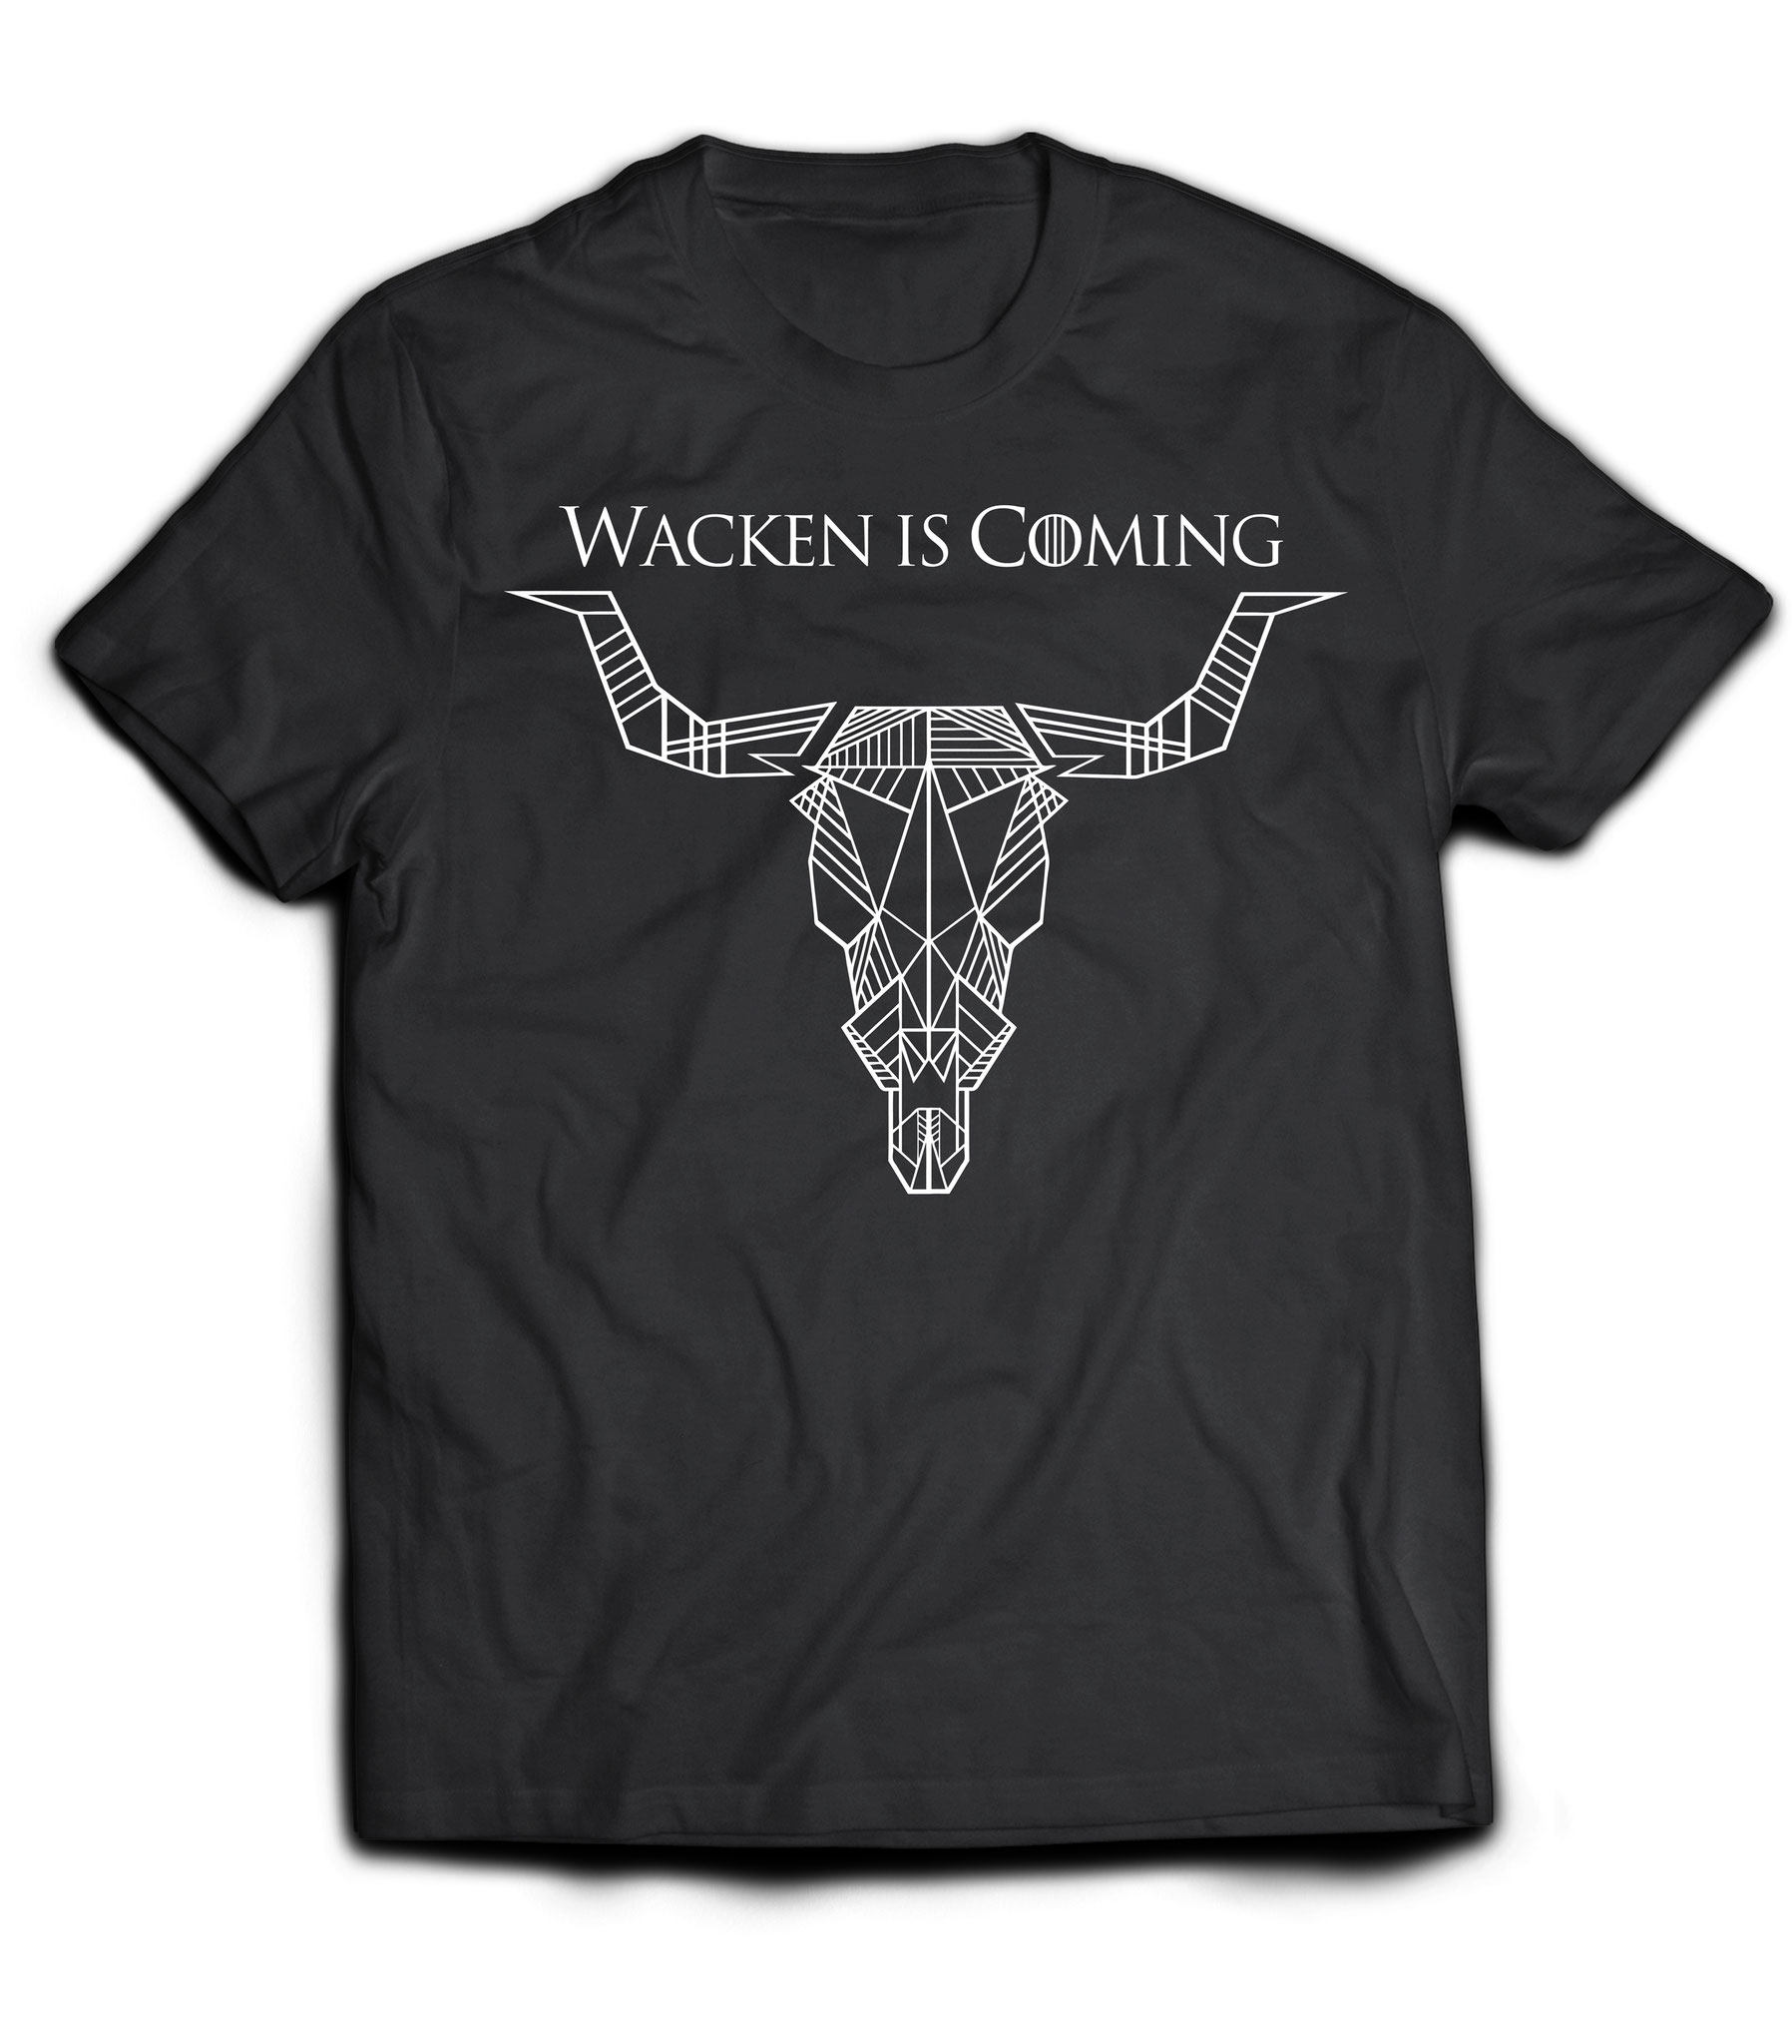 Wacken Foundation @ W-O-A